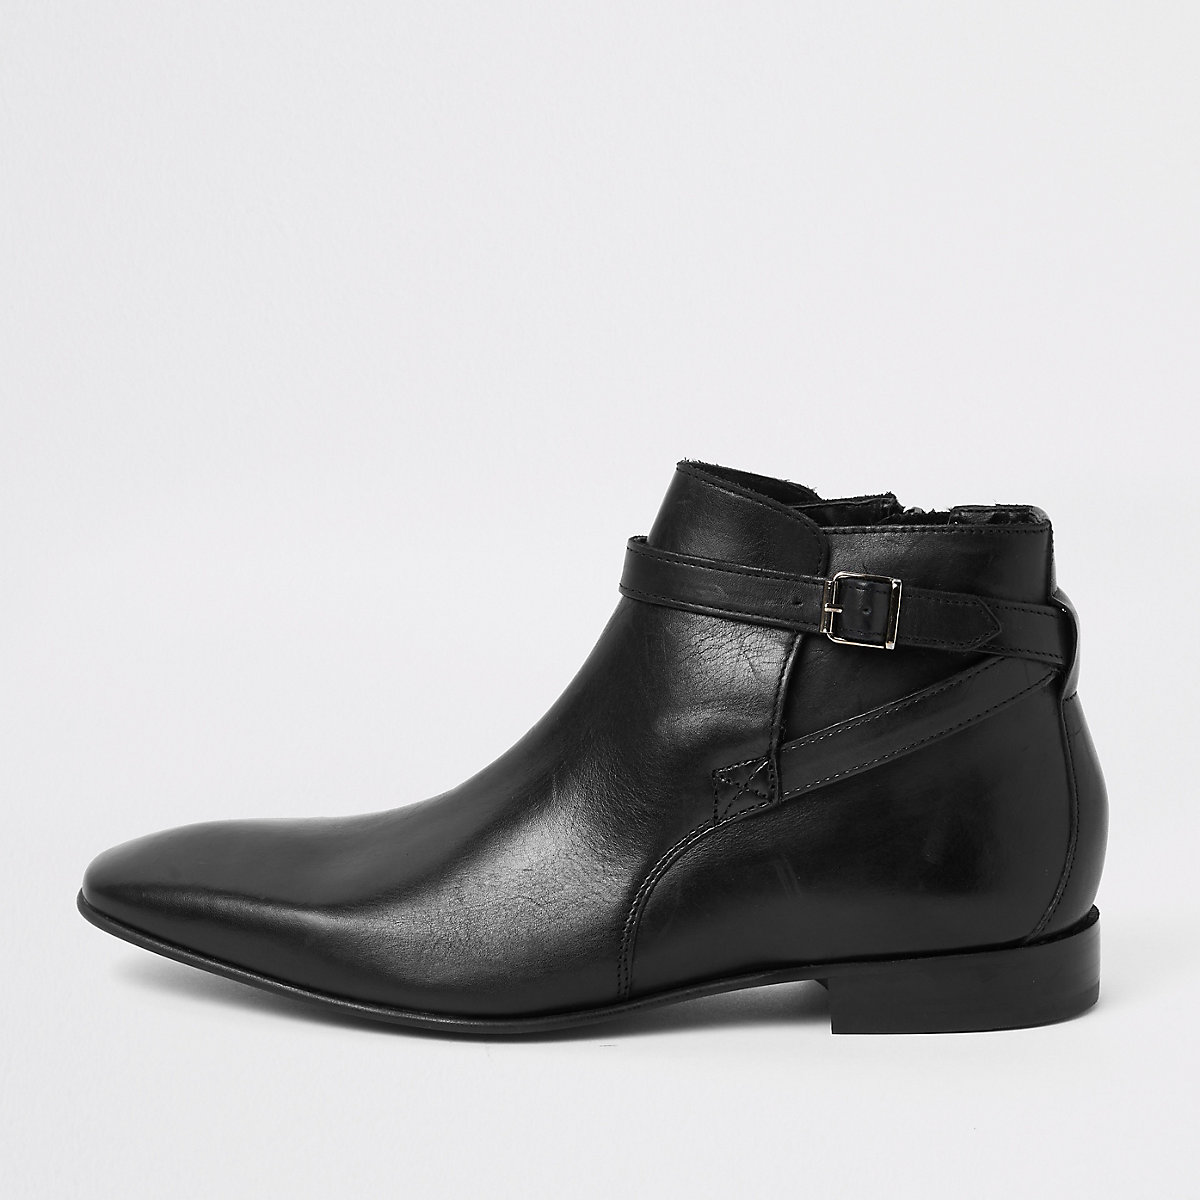 Black leather buckle Chelsea boots